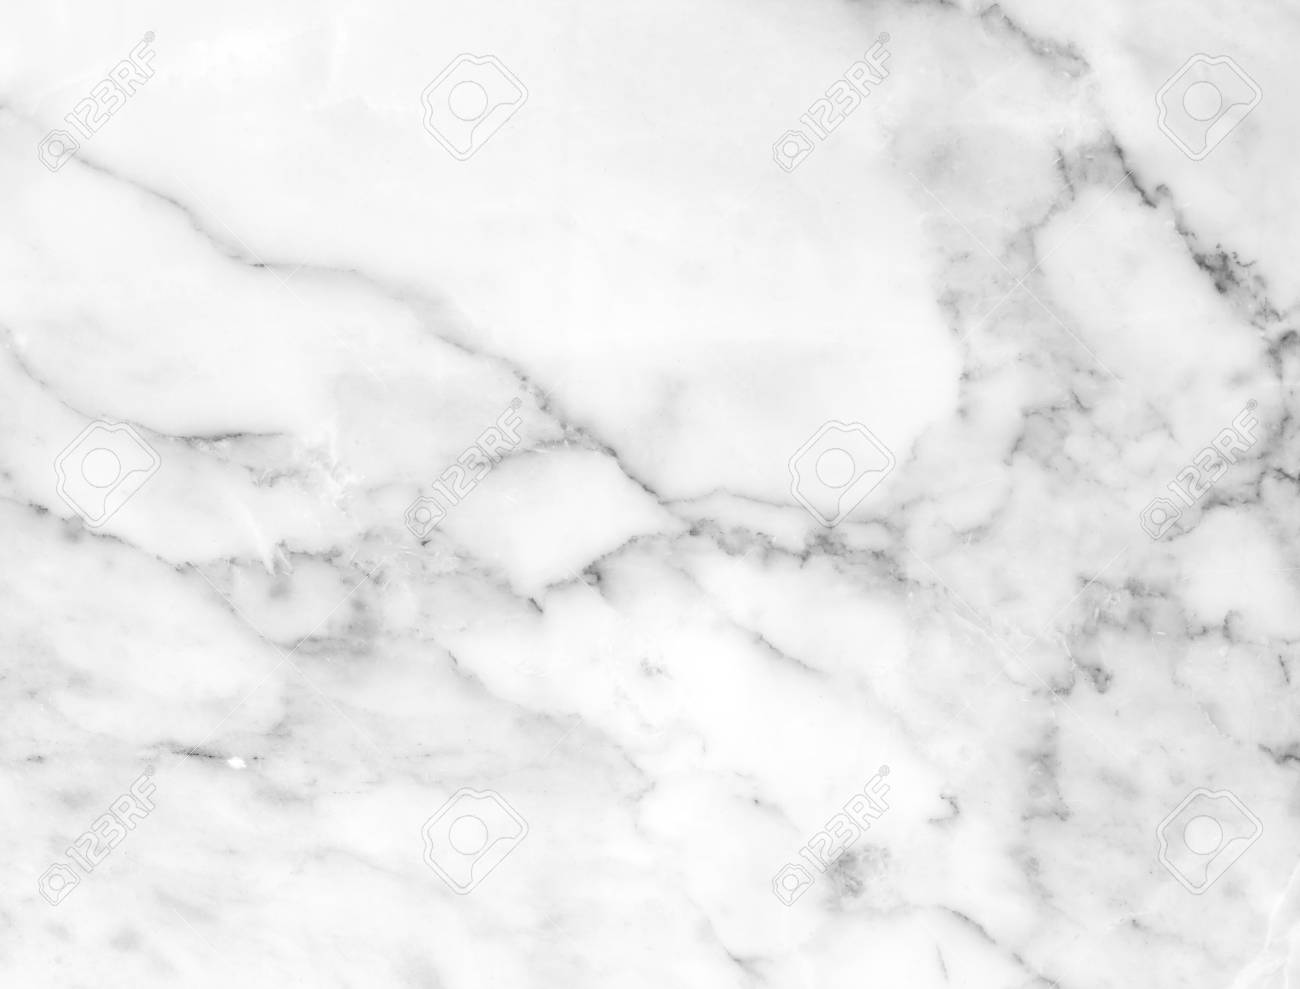 White Marble Background Stock Photo Picture And Royalty 1300x989